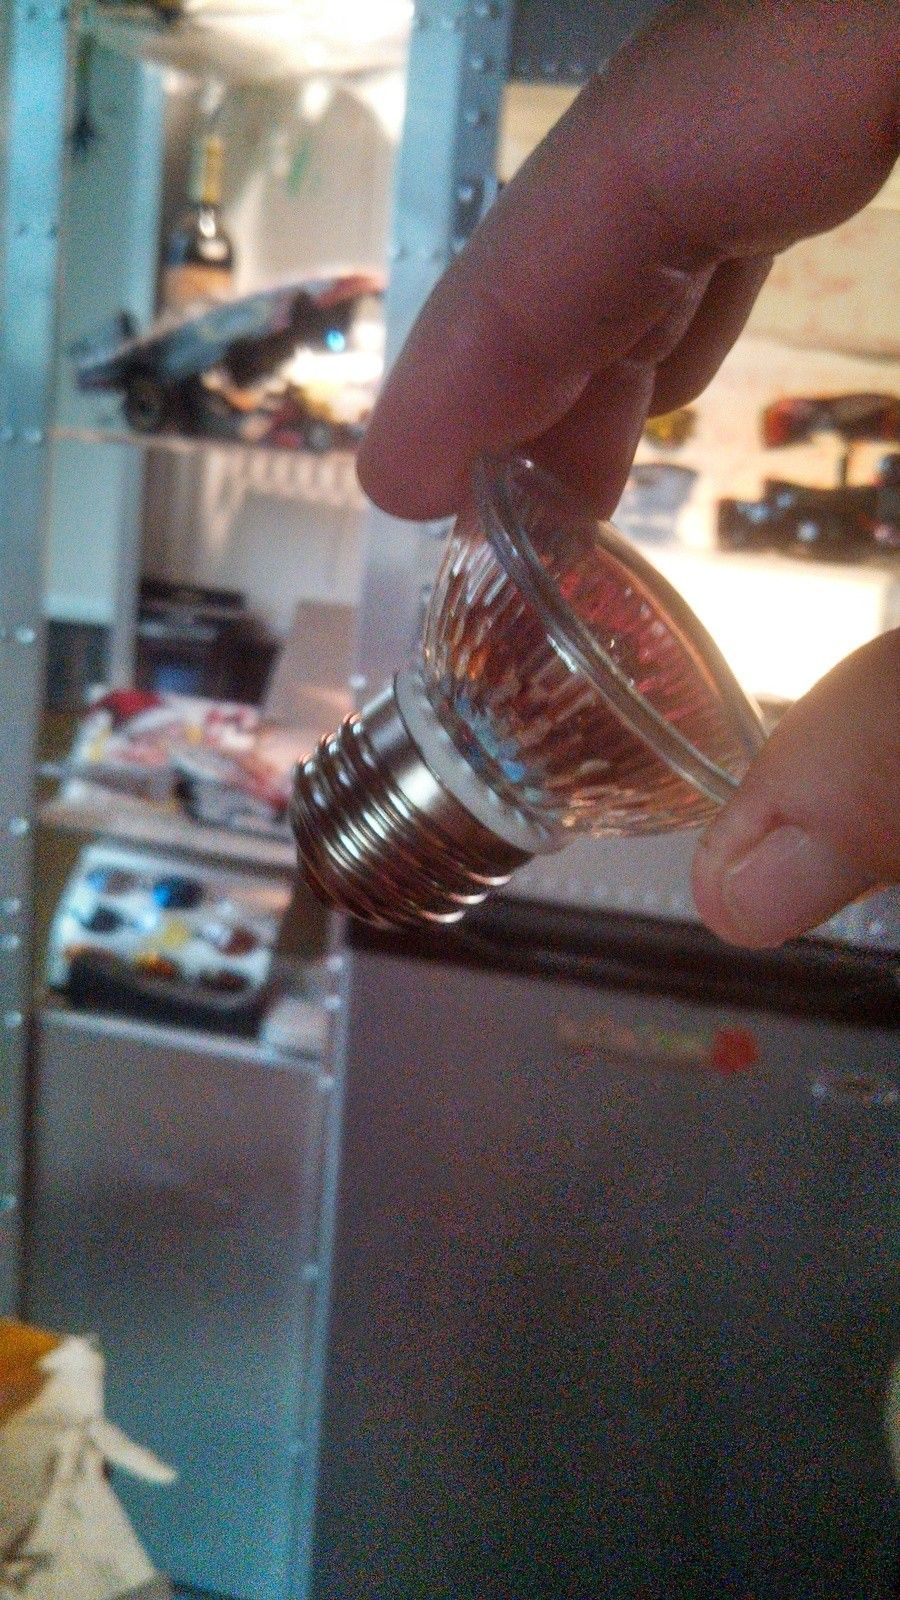 LED Replacement Bulb For Older Doublewides - IMG_20130910_092357_772.jpg